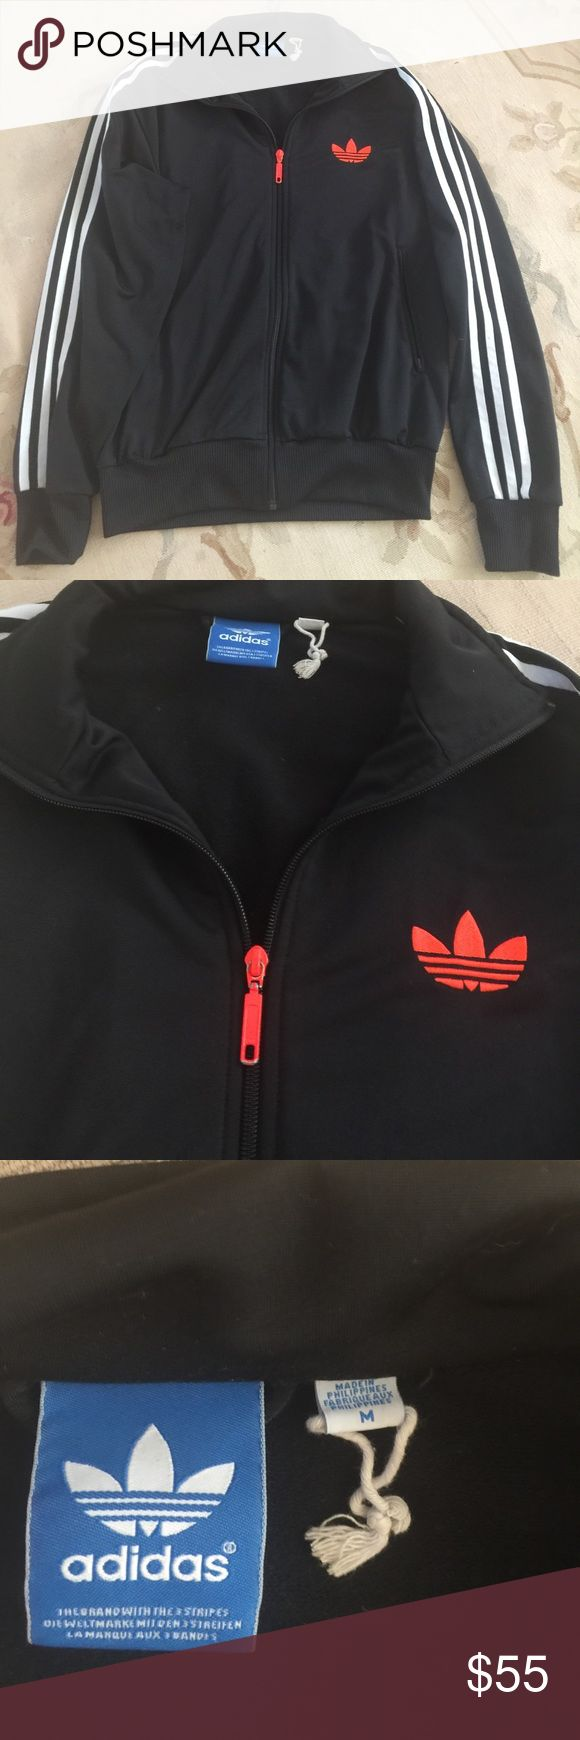 Pre owned Adidas zip up Jacket size medium Signature Adidas black and white stripe zip up jacket size medium with neon zipper and Adidas symbol in great preowned condition Adidas Jackets & Coats